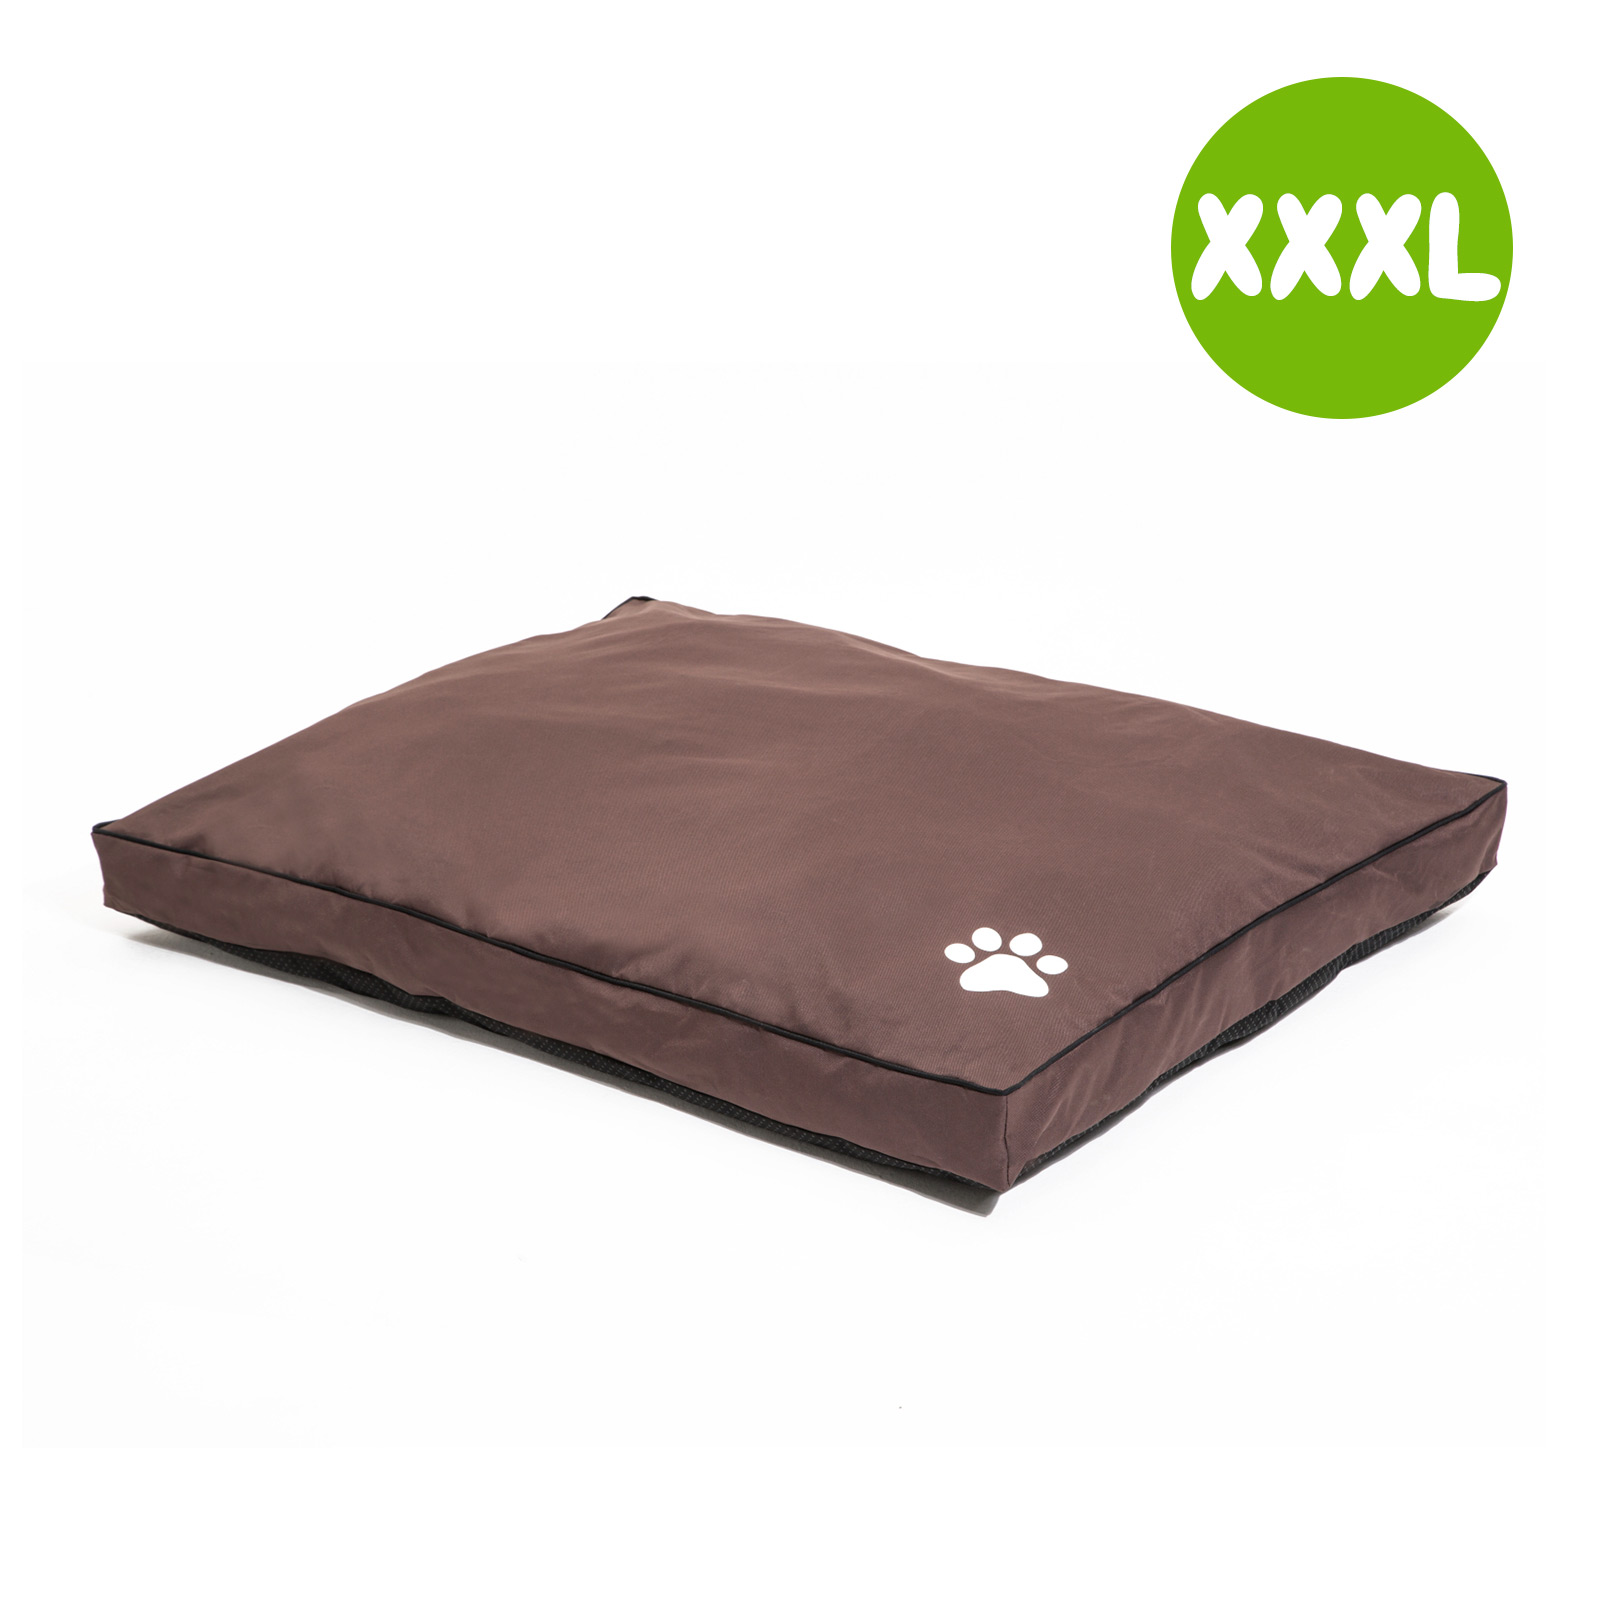 3XL Pet Bed Mattress - BROWN